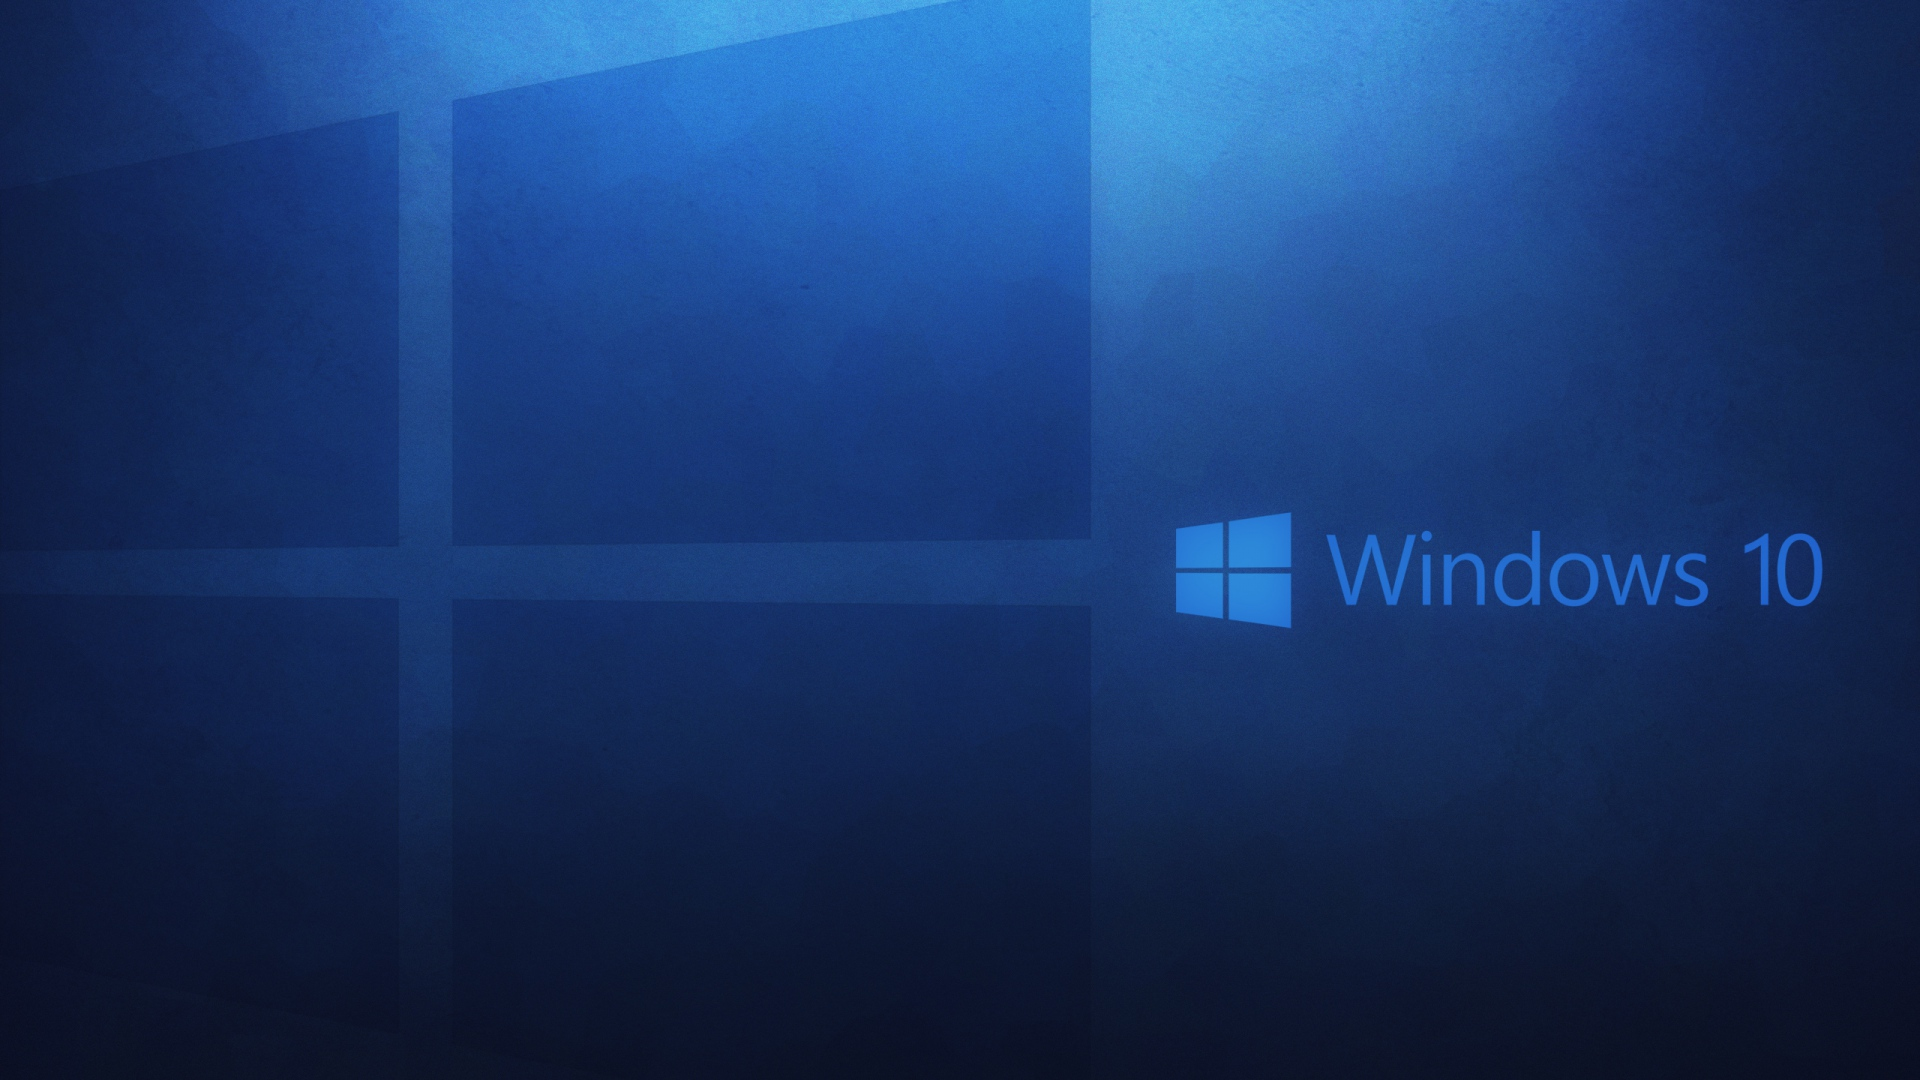 HD Background Windows 10 Wallpaper Microsoft Operating System Blue ...